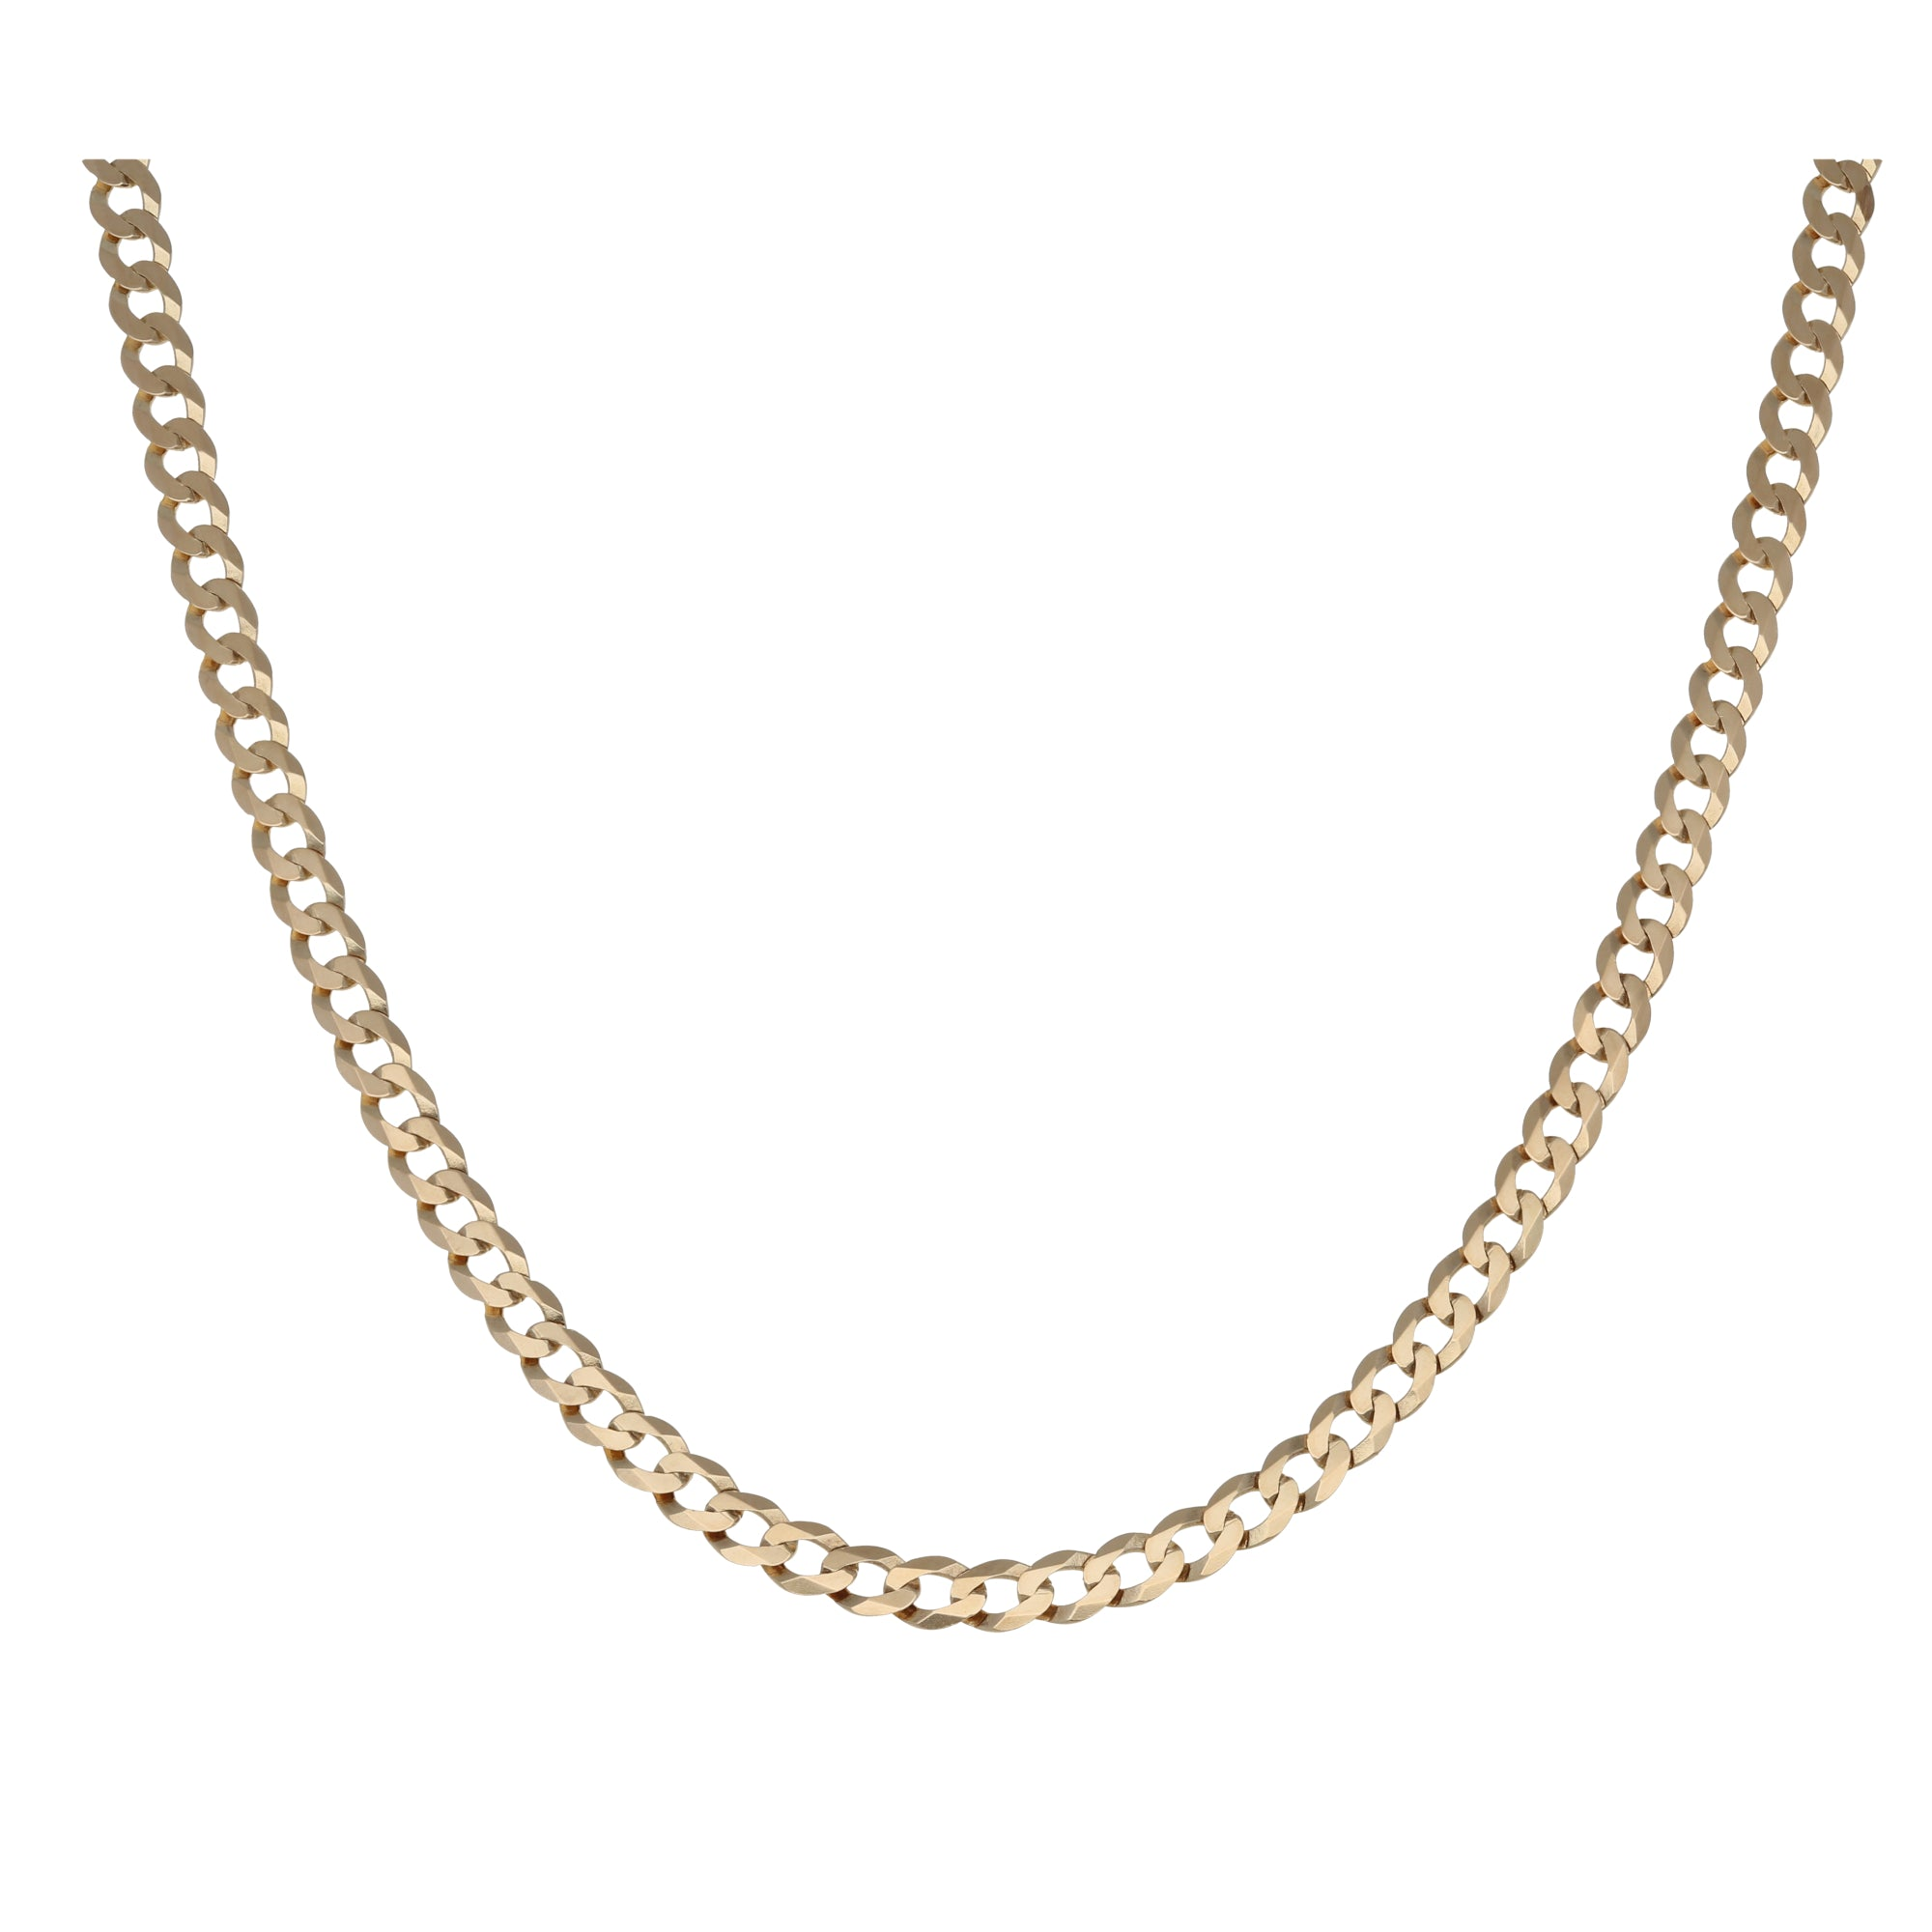 9ct Gold Ladies Curb Chain 28